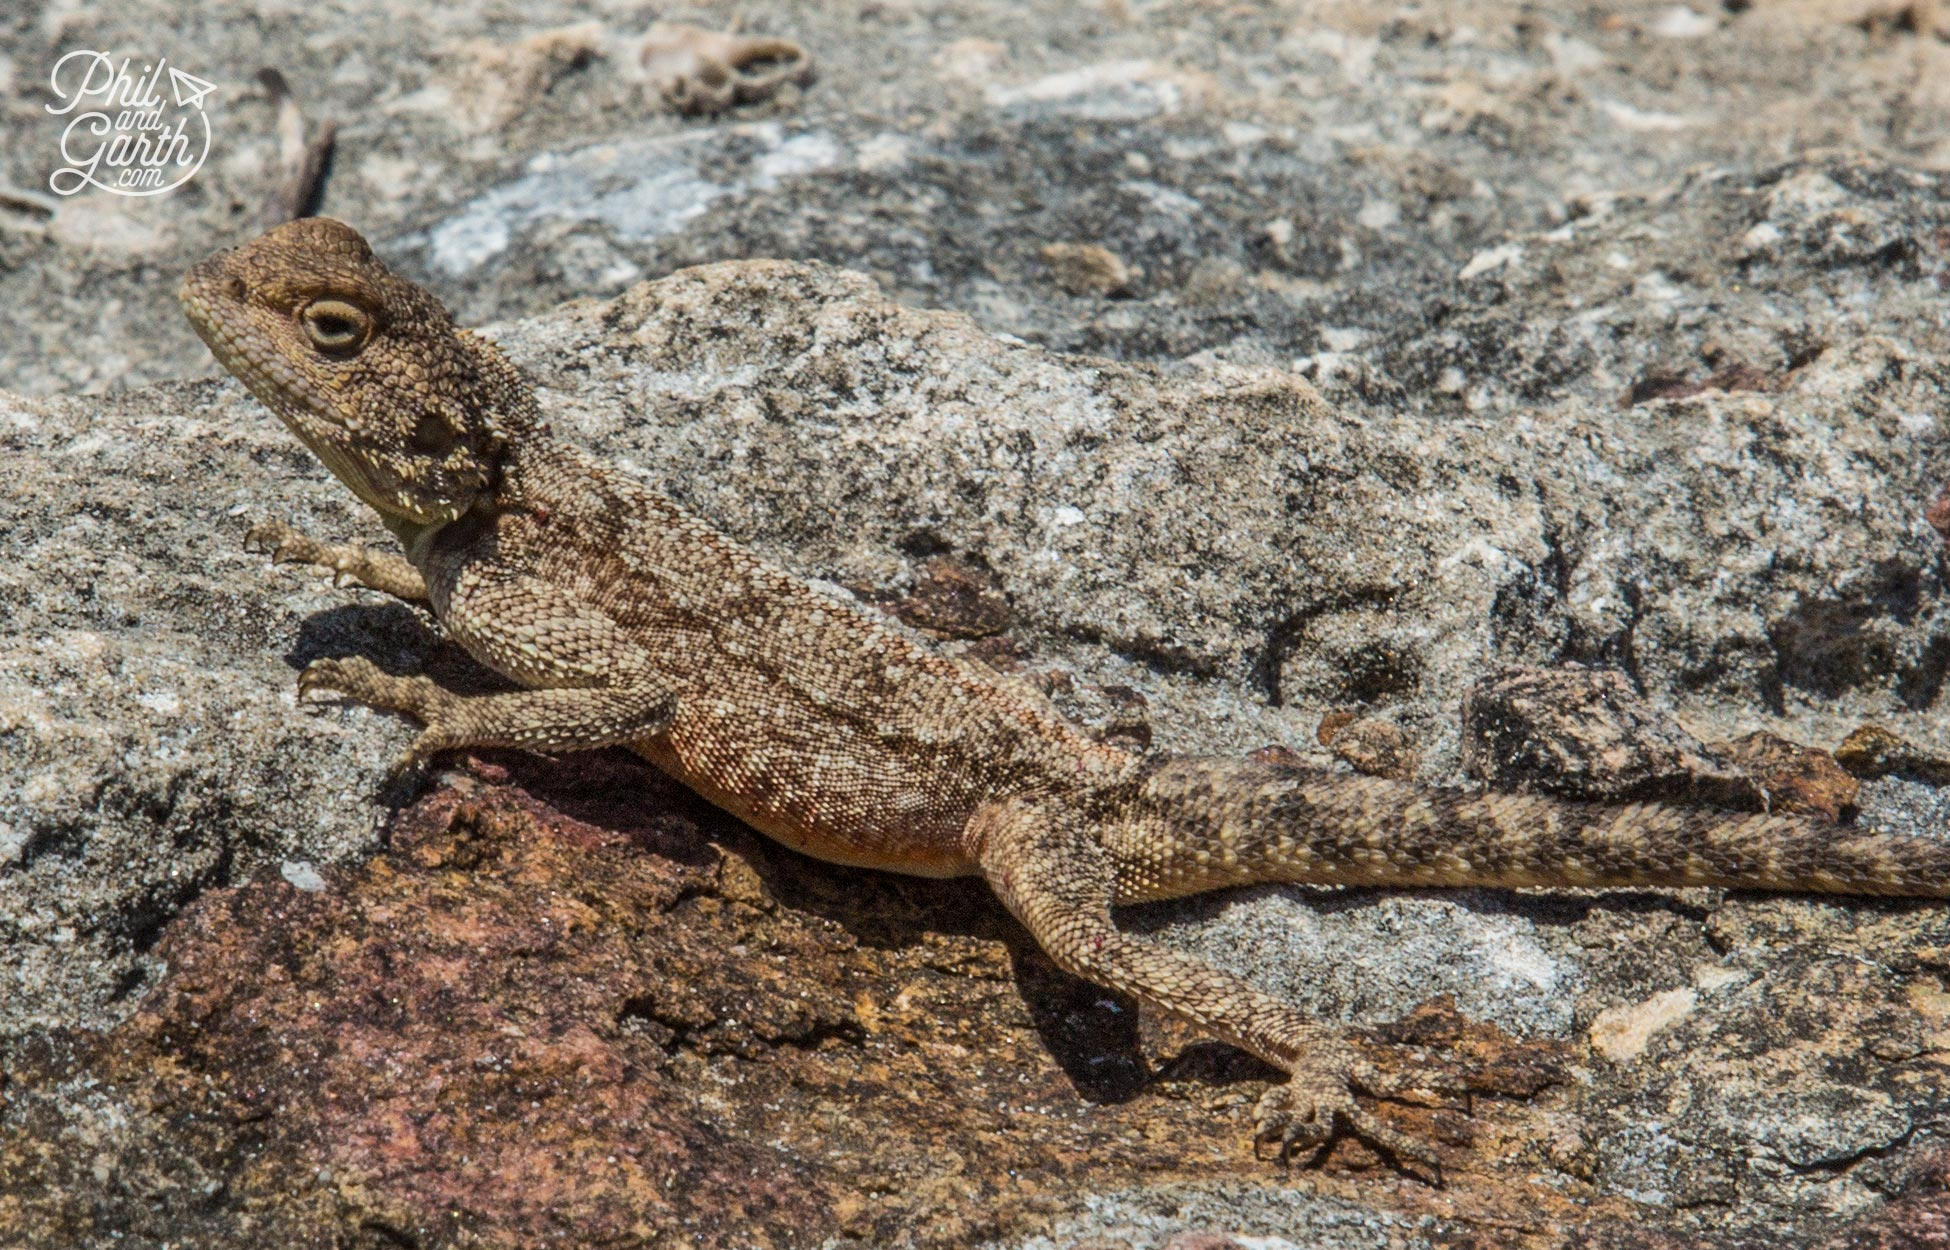 A lizard blends in with the rock, it's possibly an Agama